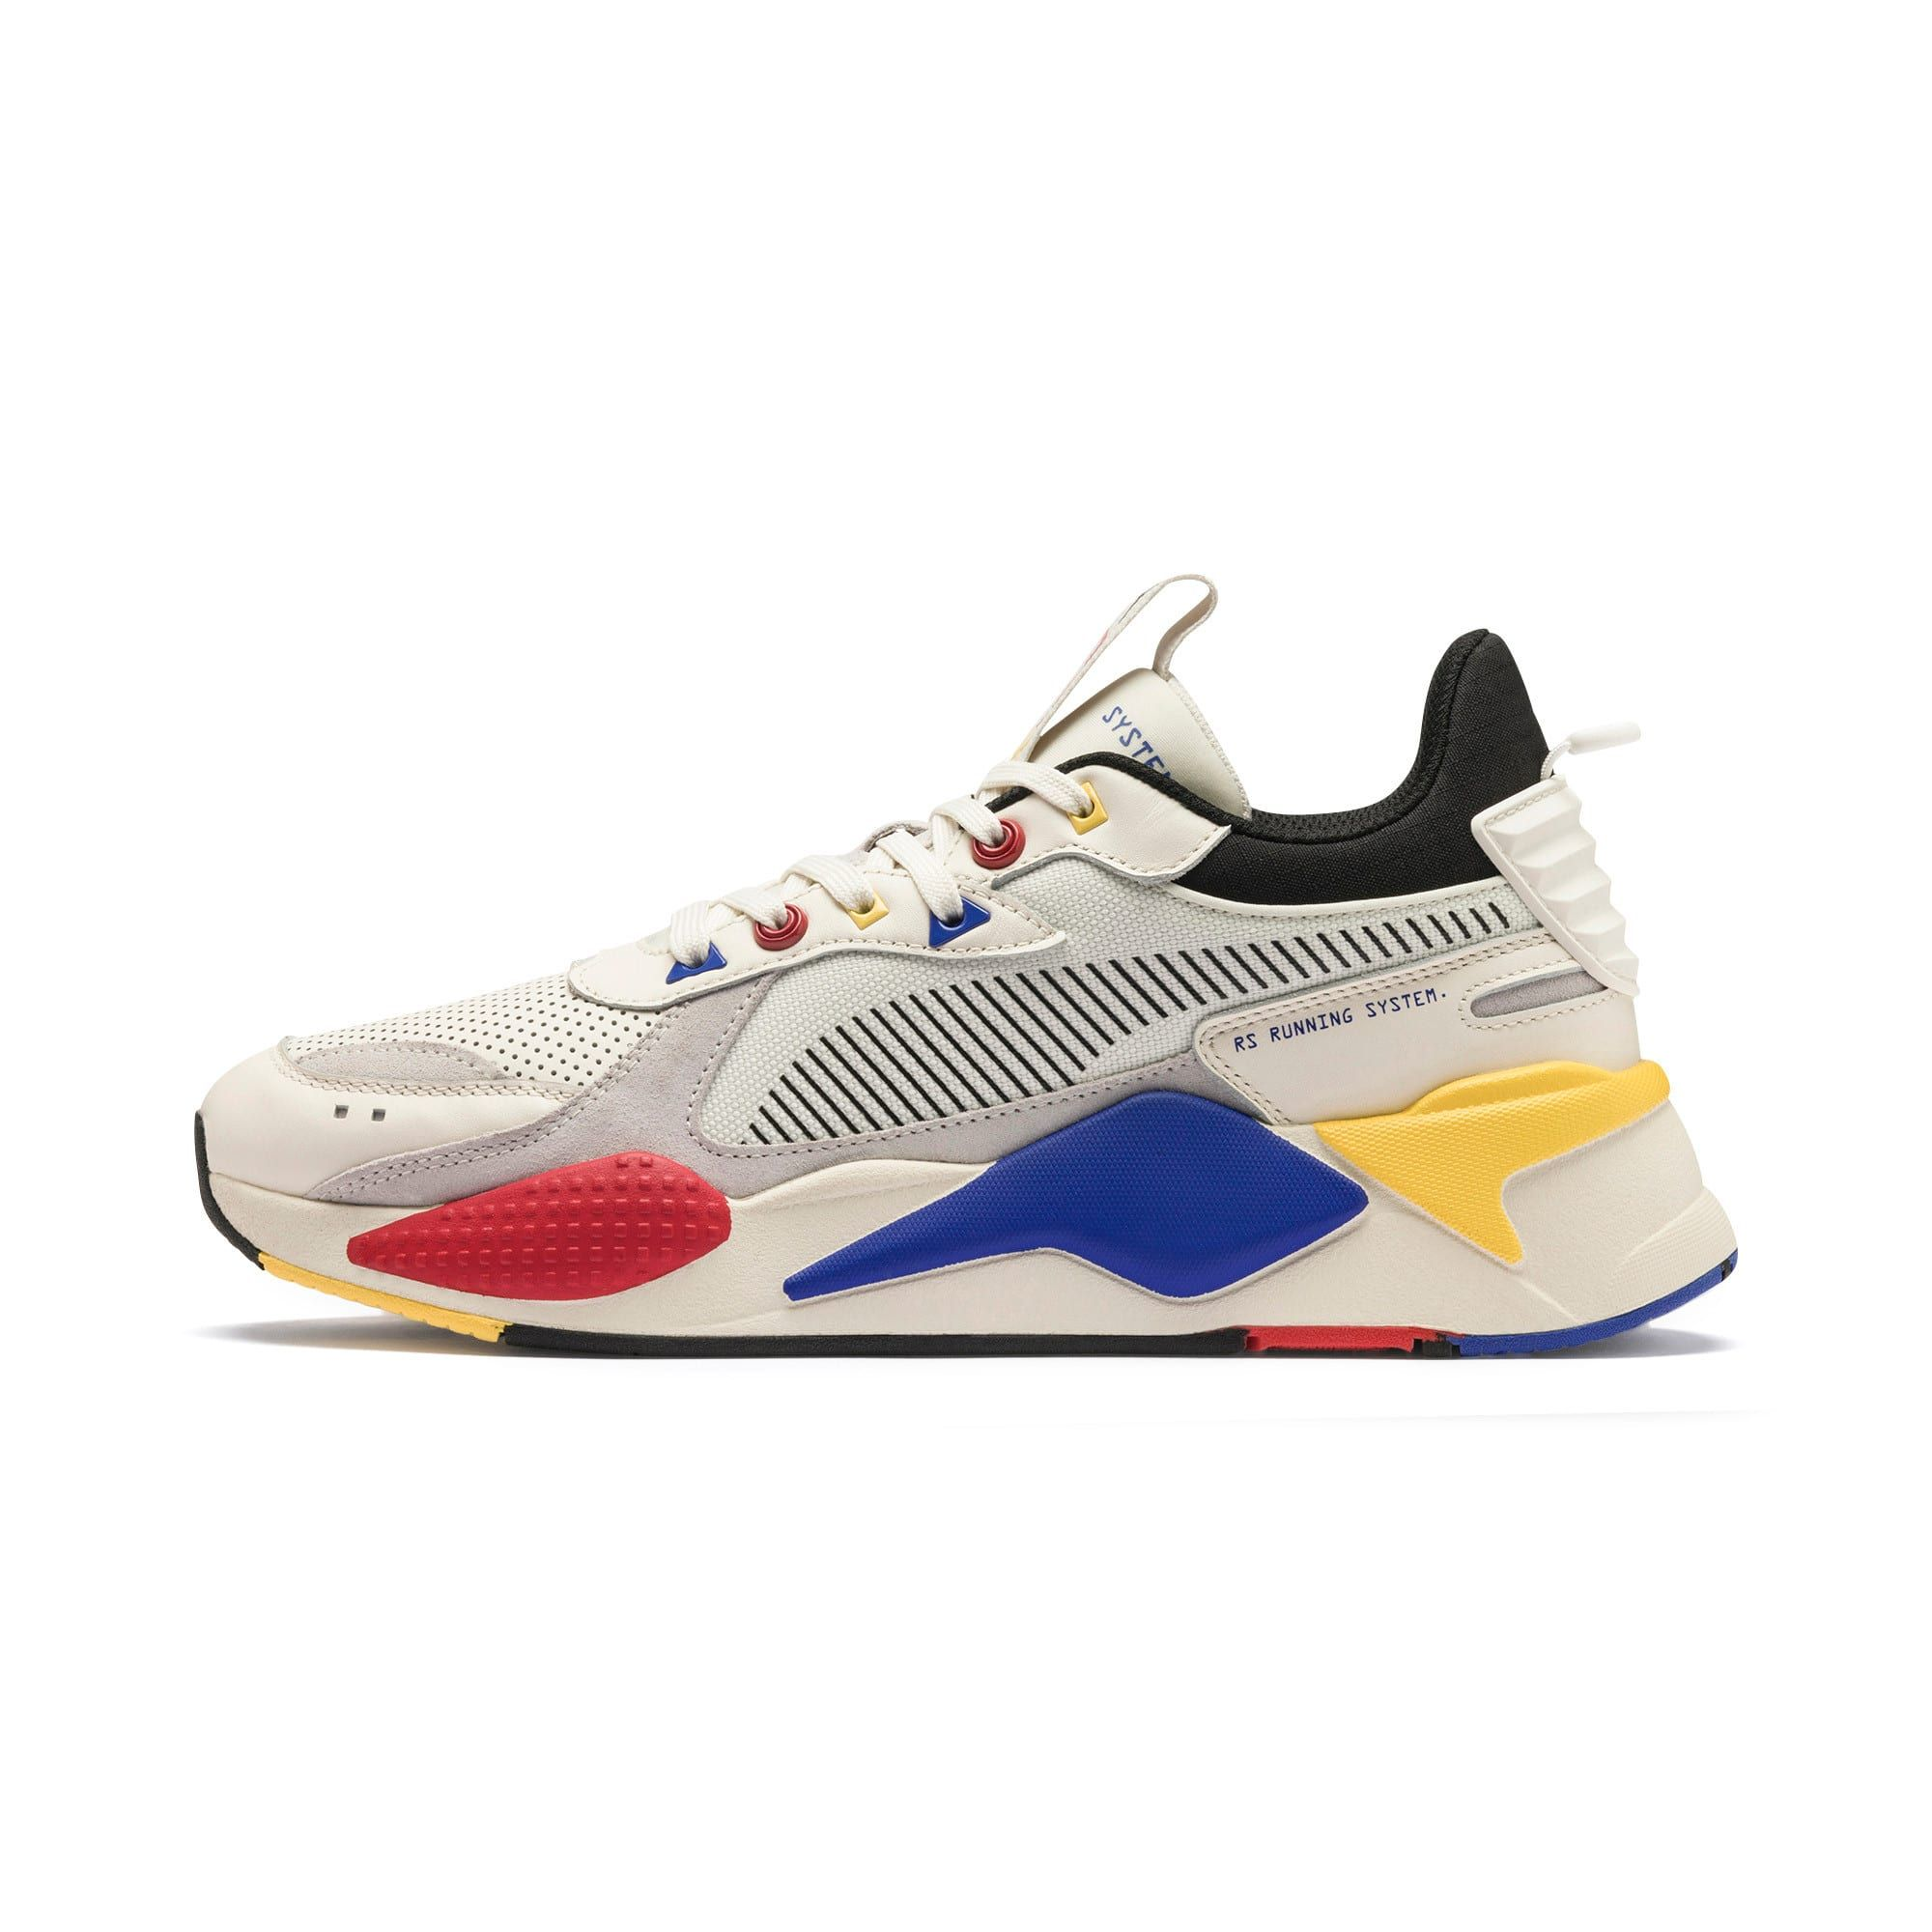 PUMA Rs-X Colour Theory Trainers in Whisper White/Black size 10.5 #men#39;sfashion